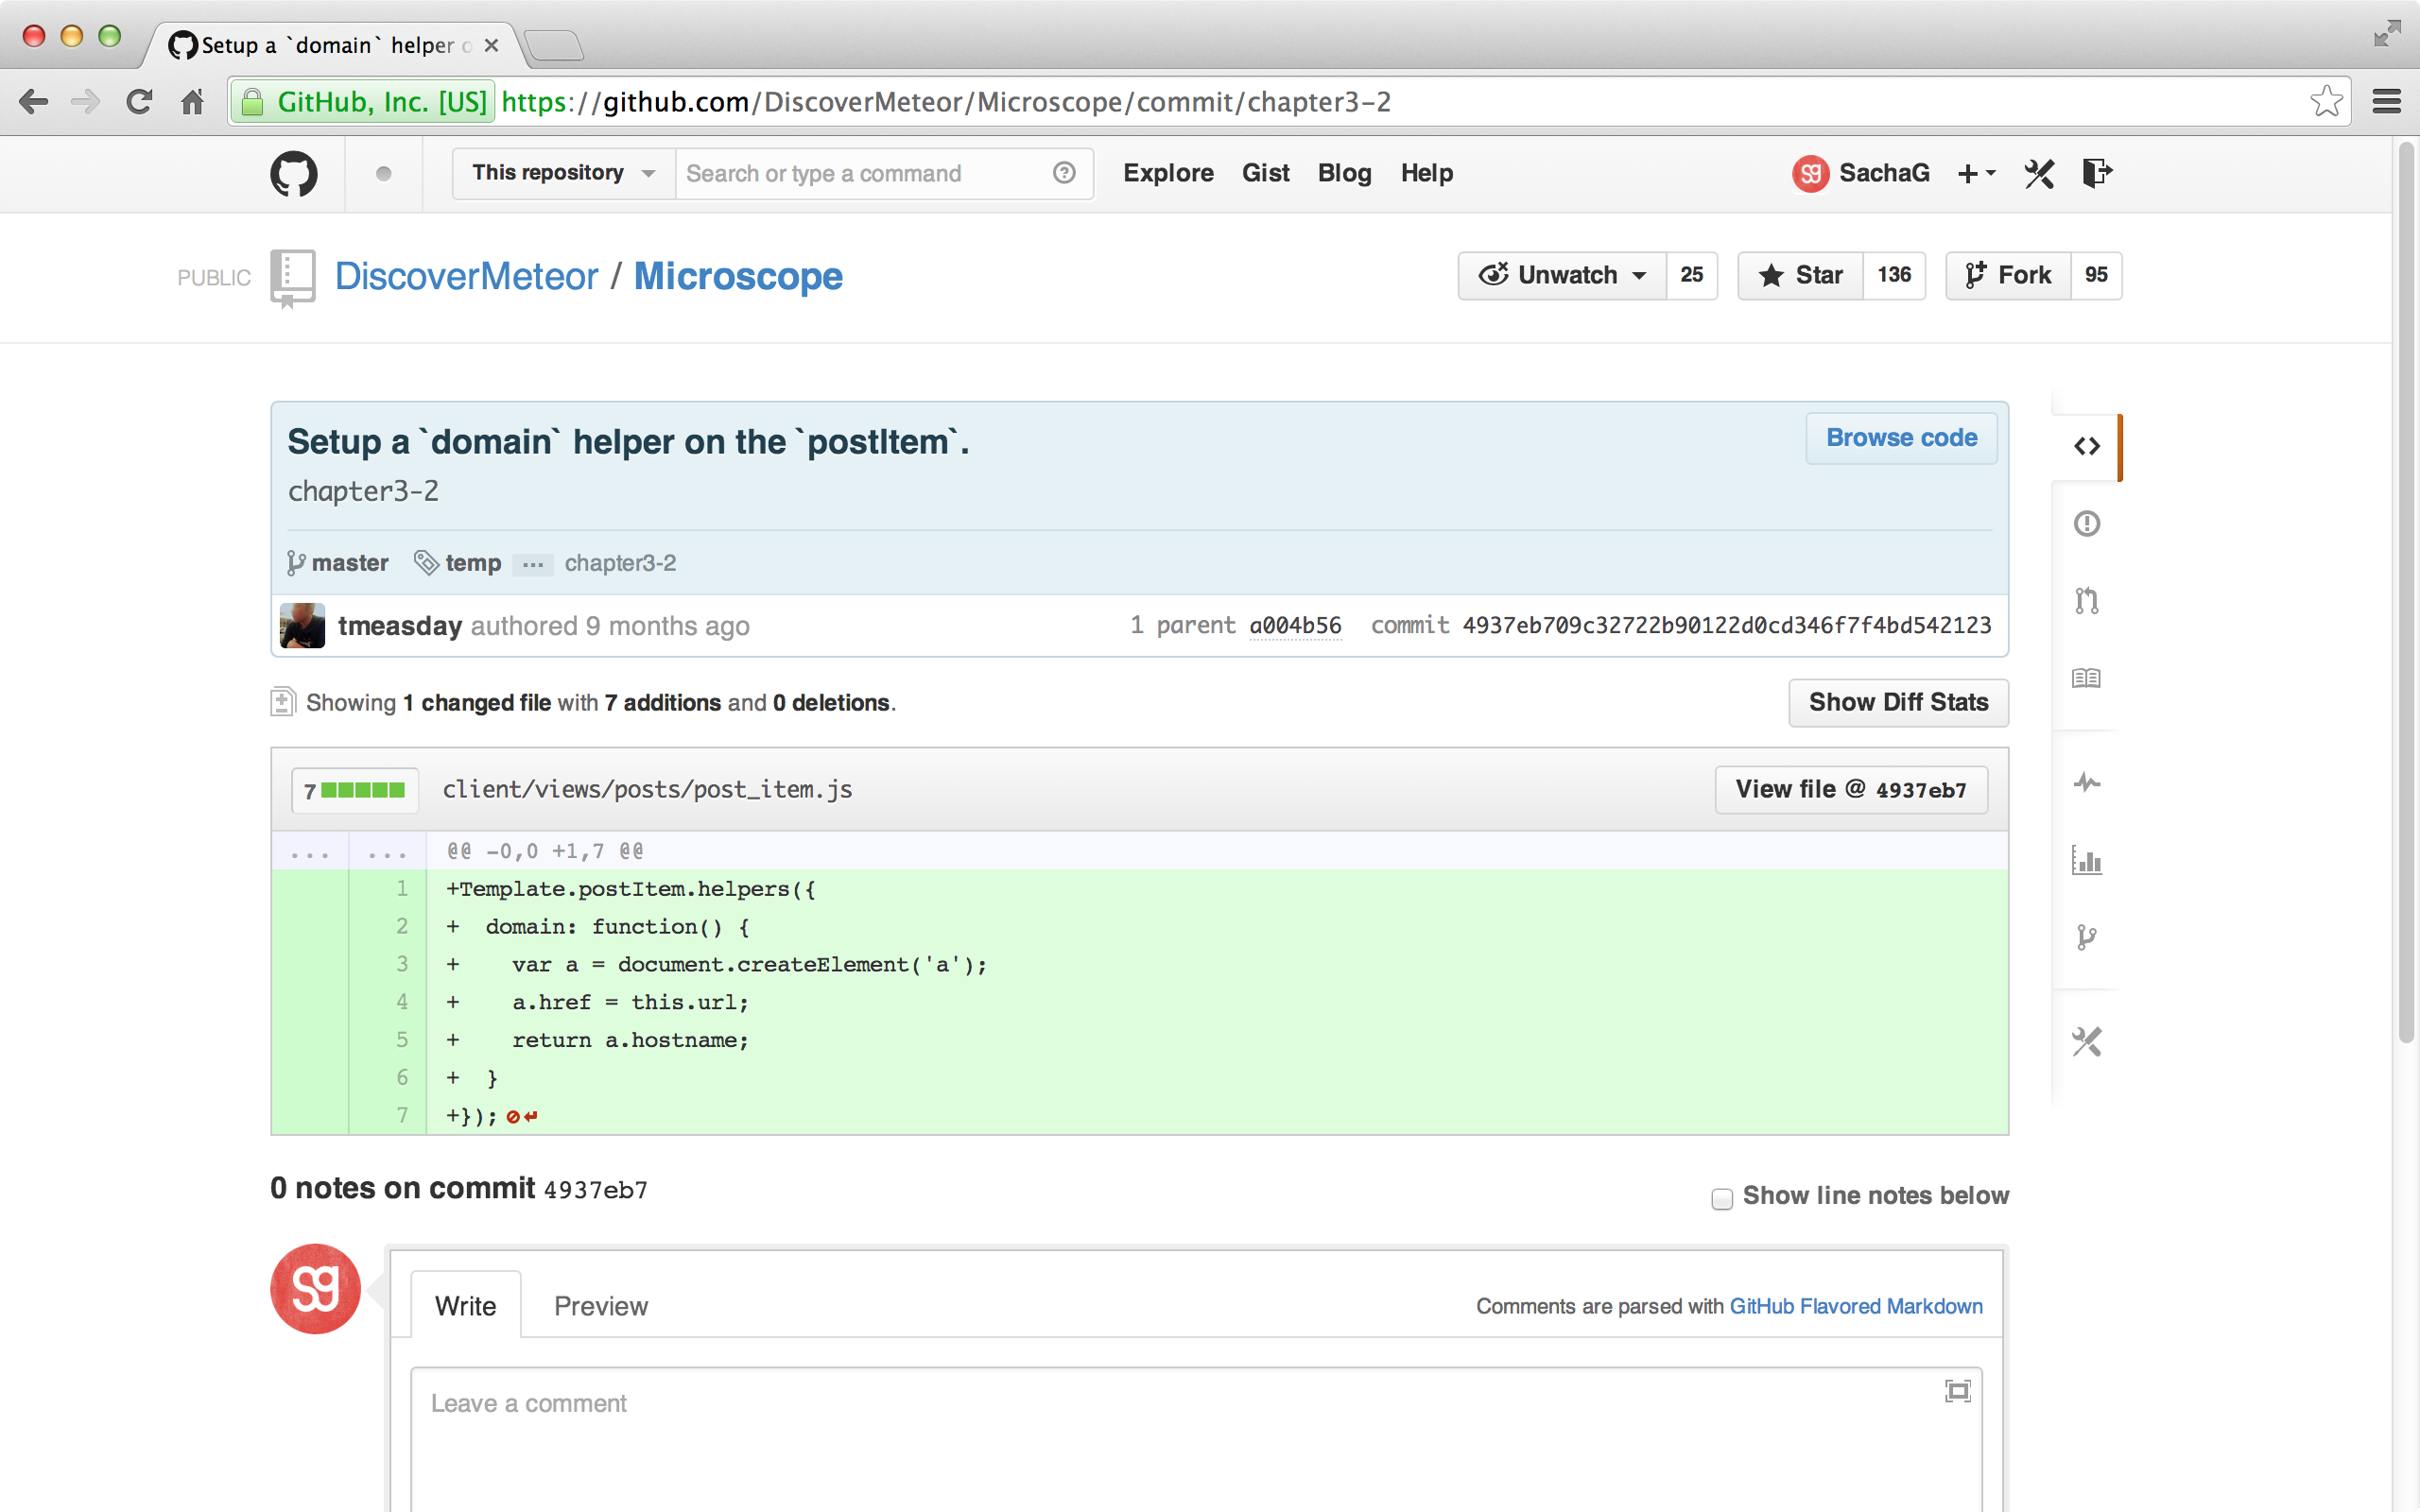 A Git commit as shown on GitHub